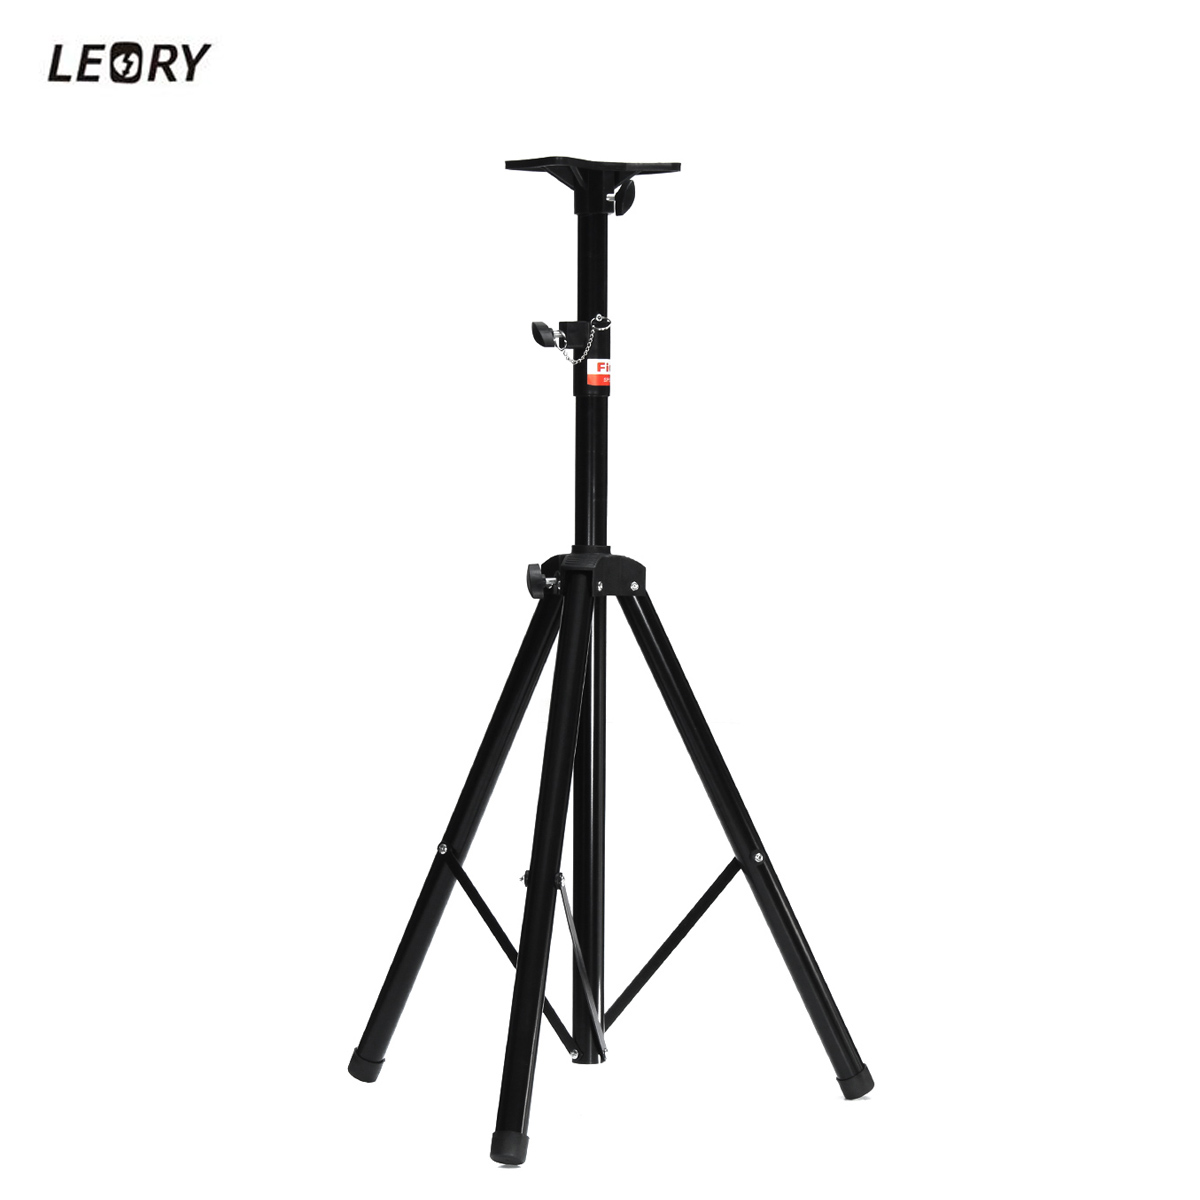 LEORY Universal 60kg Loading Folding Projector Stand Tripod with metal stand & Tray Speaker Holder Stand Tripod Holder leory universal 50kg loading folding projector stand tripod with metal stand